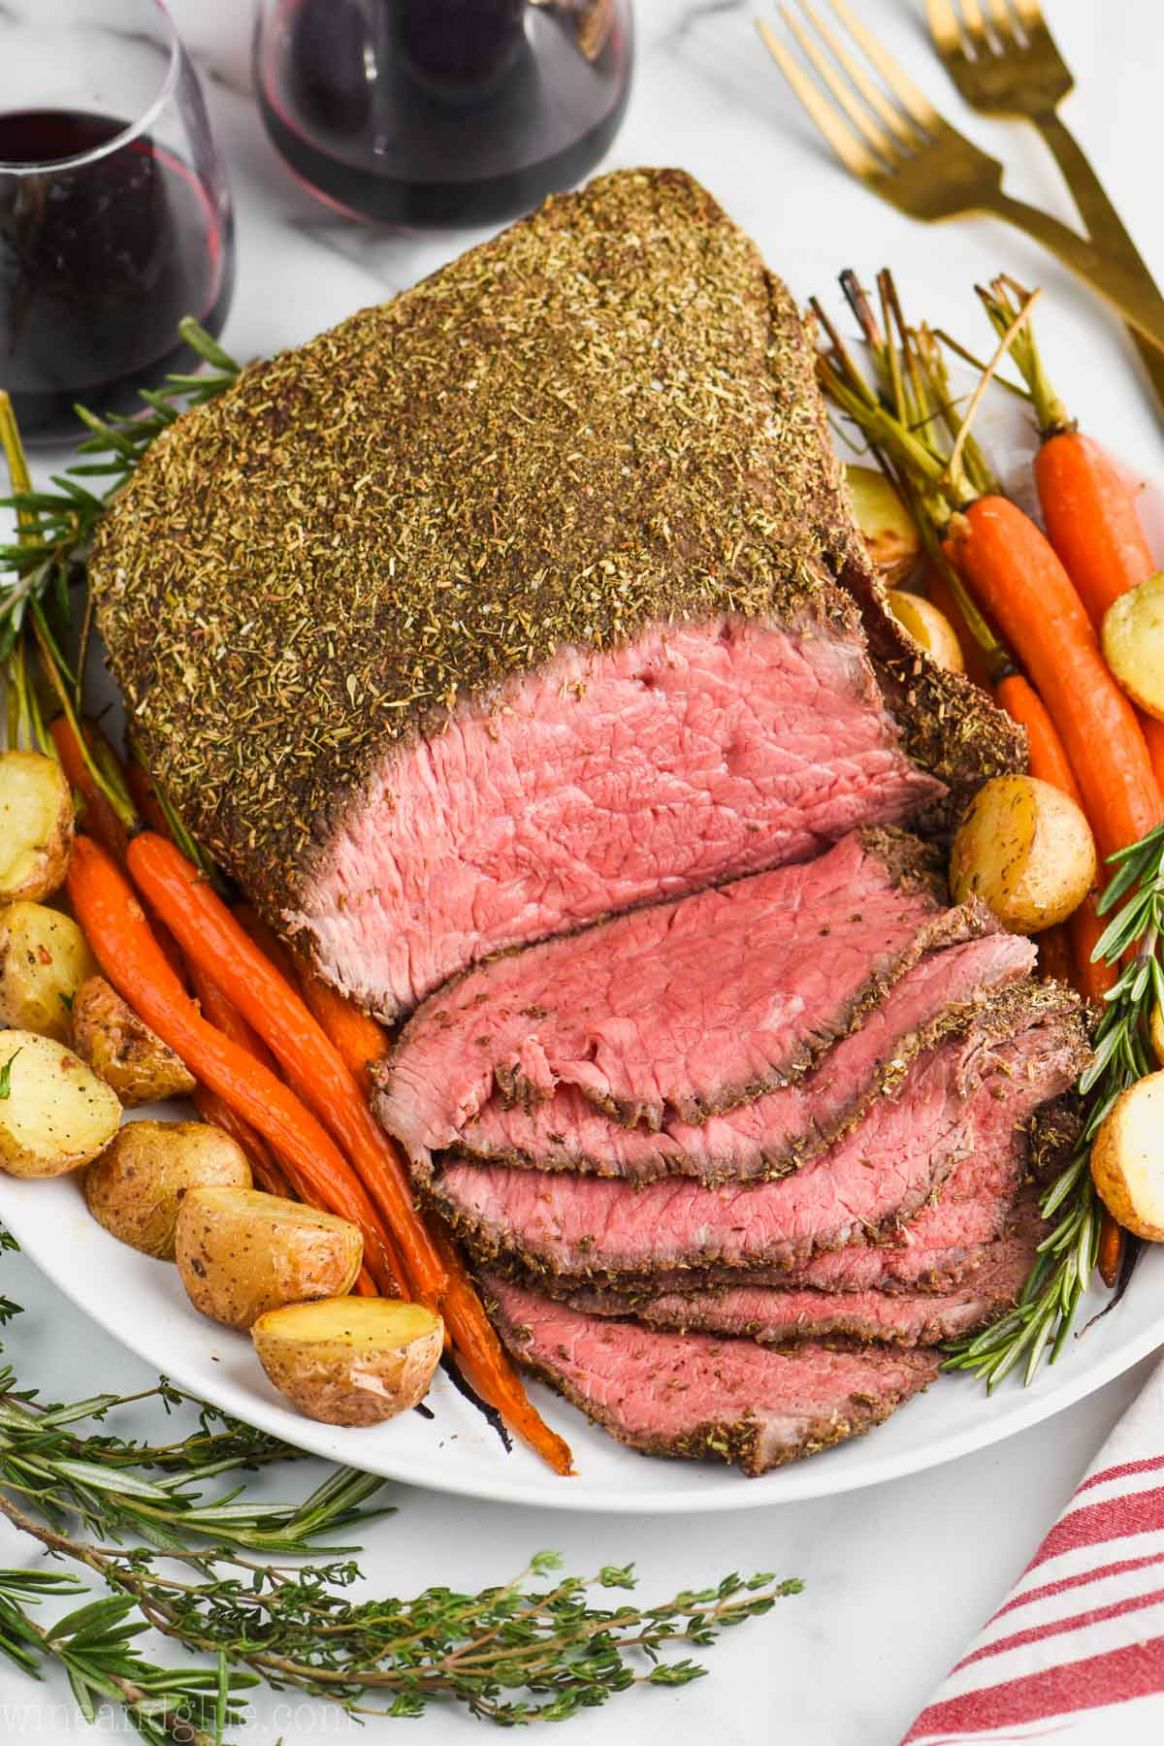 Top Round Roast Beef Recipe - Recipes Beef Top Round Steak